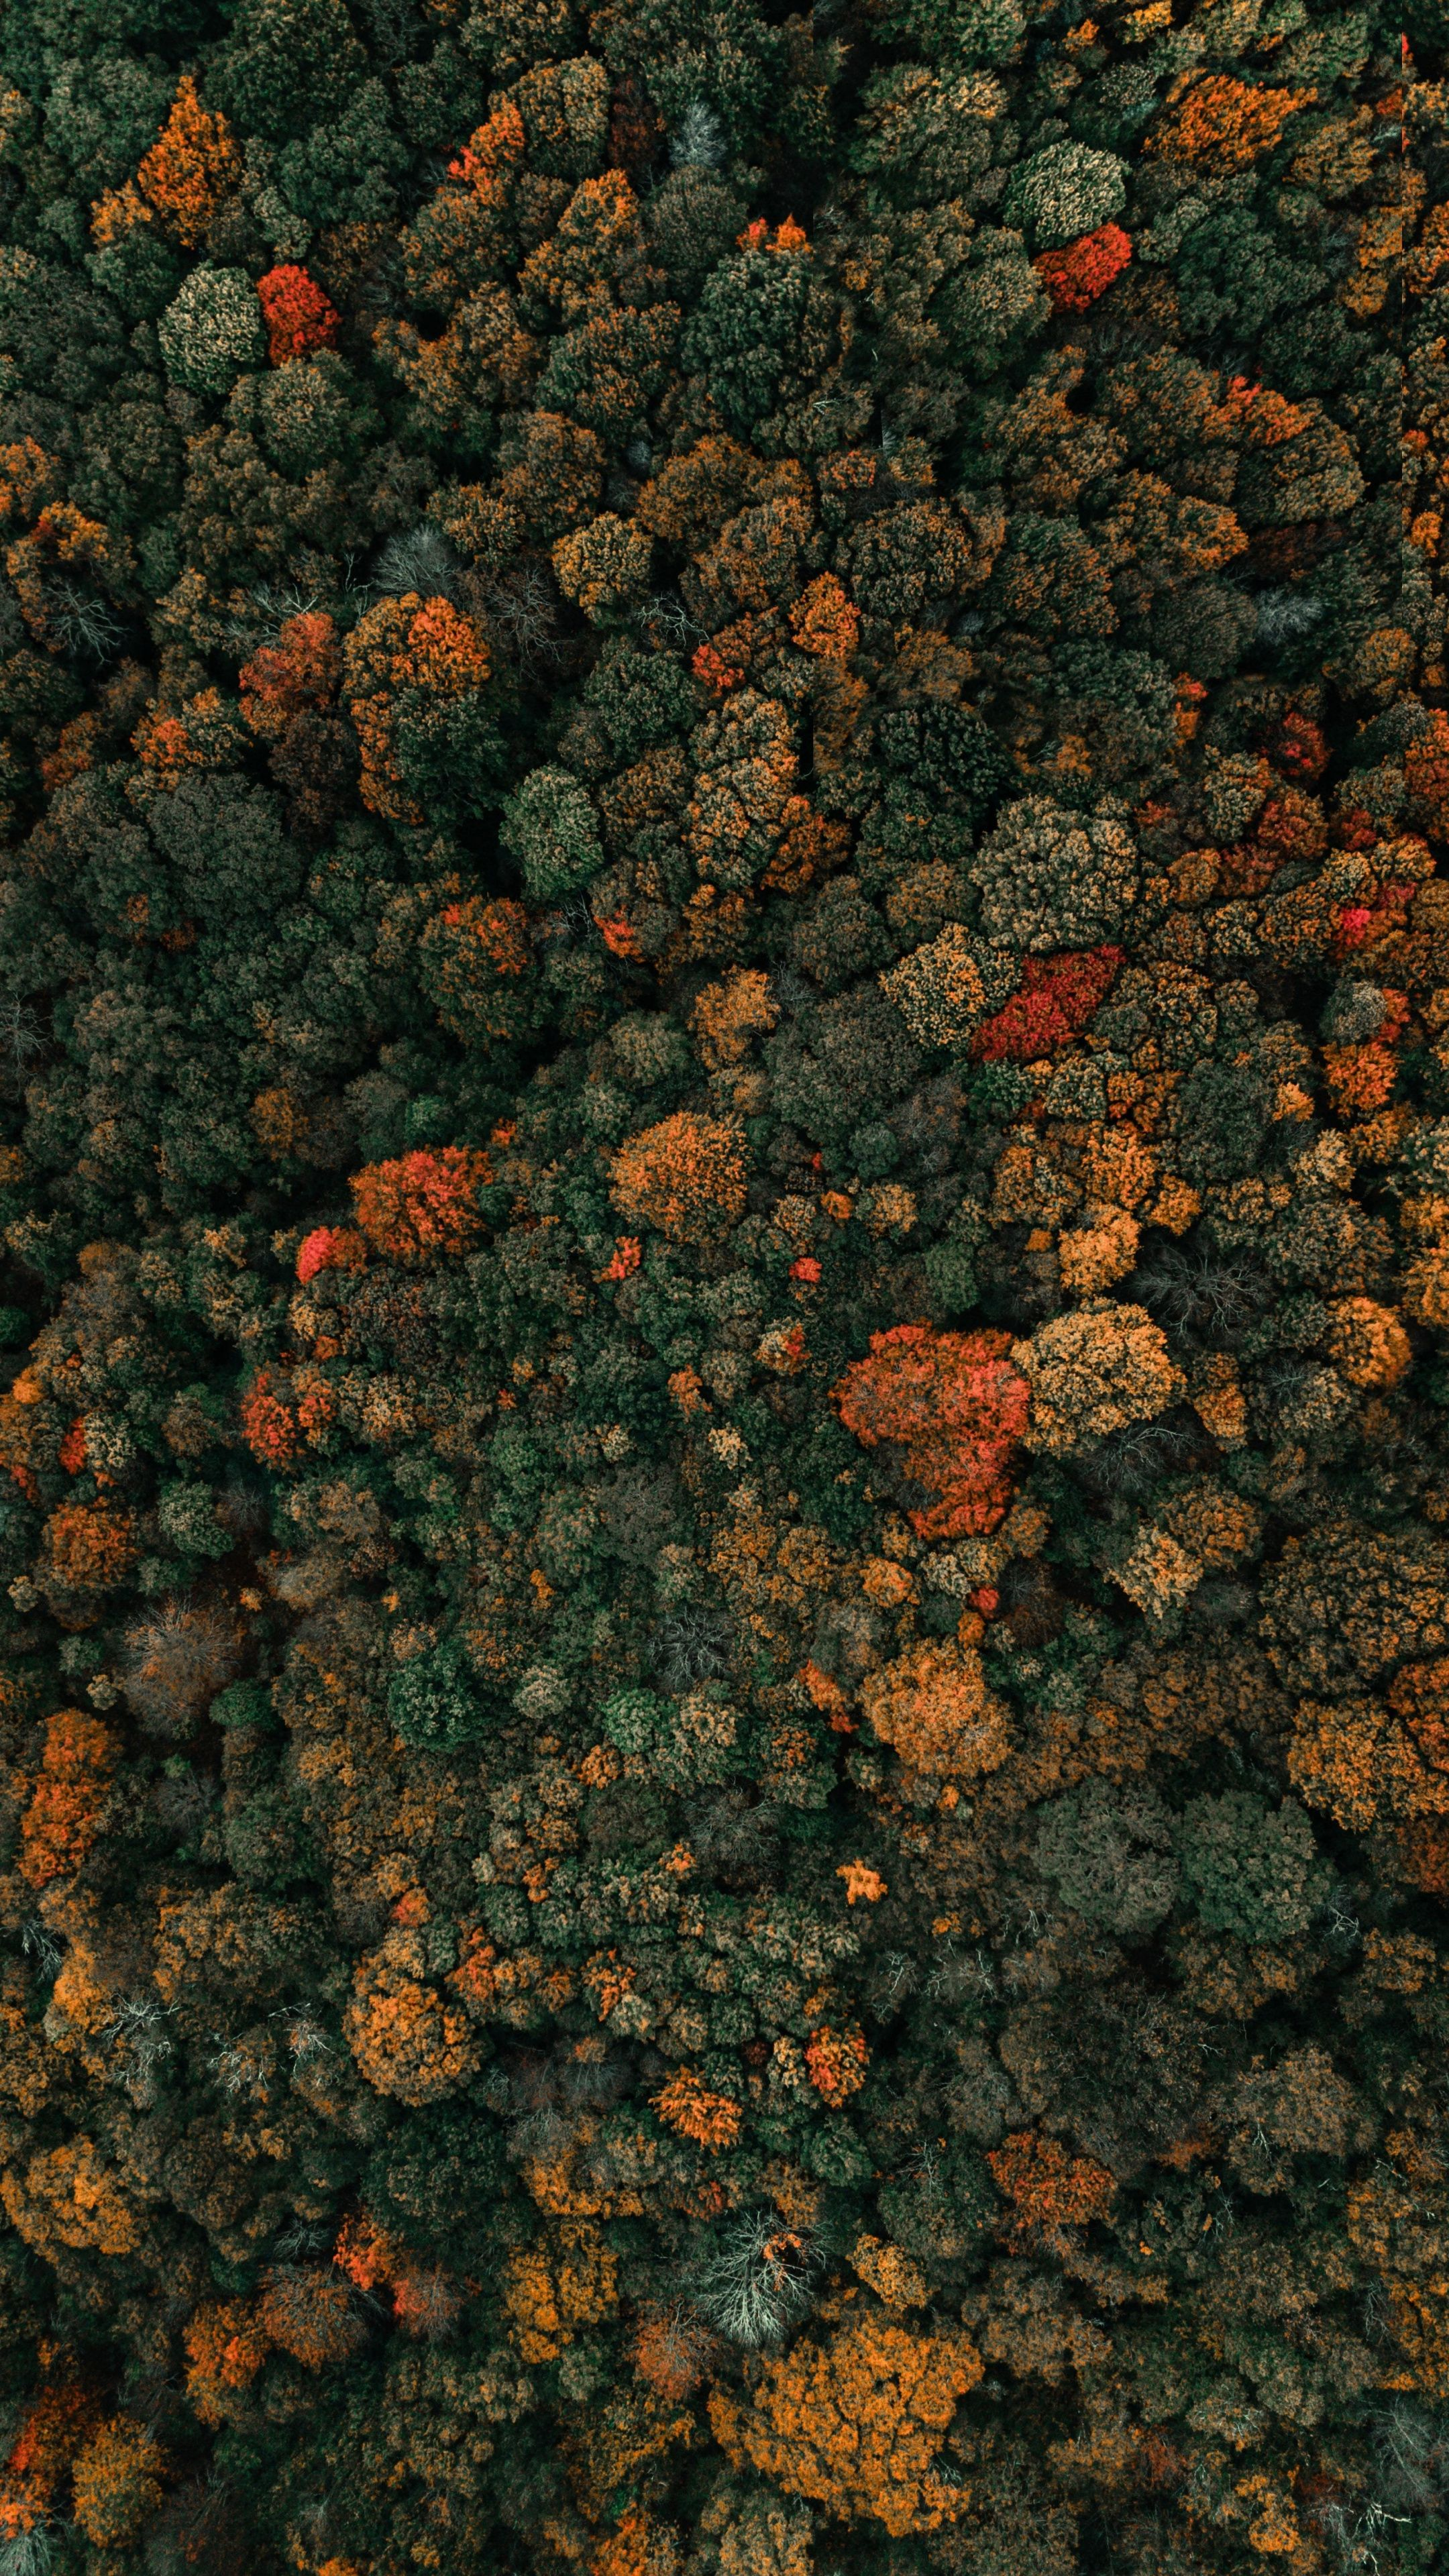 2160x3840 Colored Trees Fall Autumn Nature Aerial View Wallpaper Aerial Photography People View Wallpaper Aerial Photography Drone